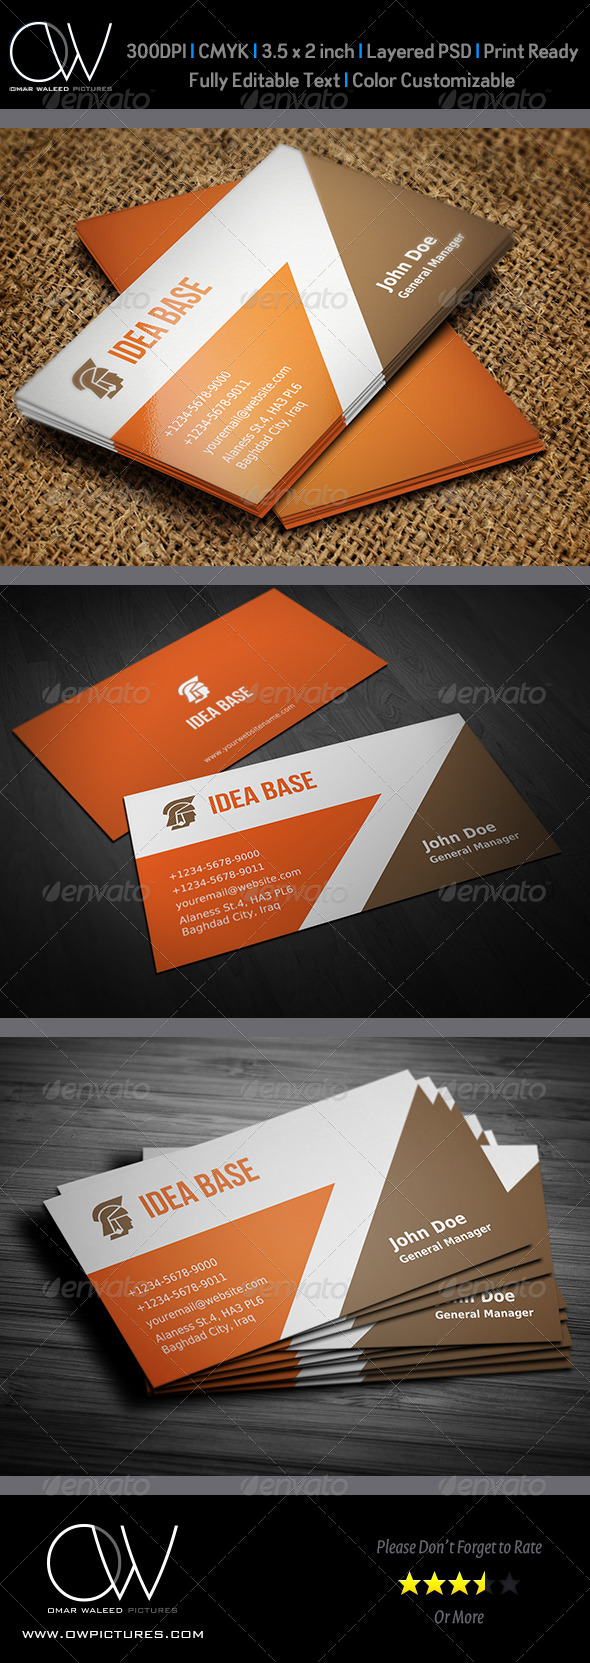 Corporate Business Card Vol.21 - Business Cards Print Templates